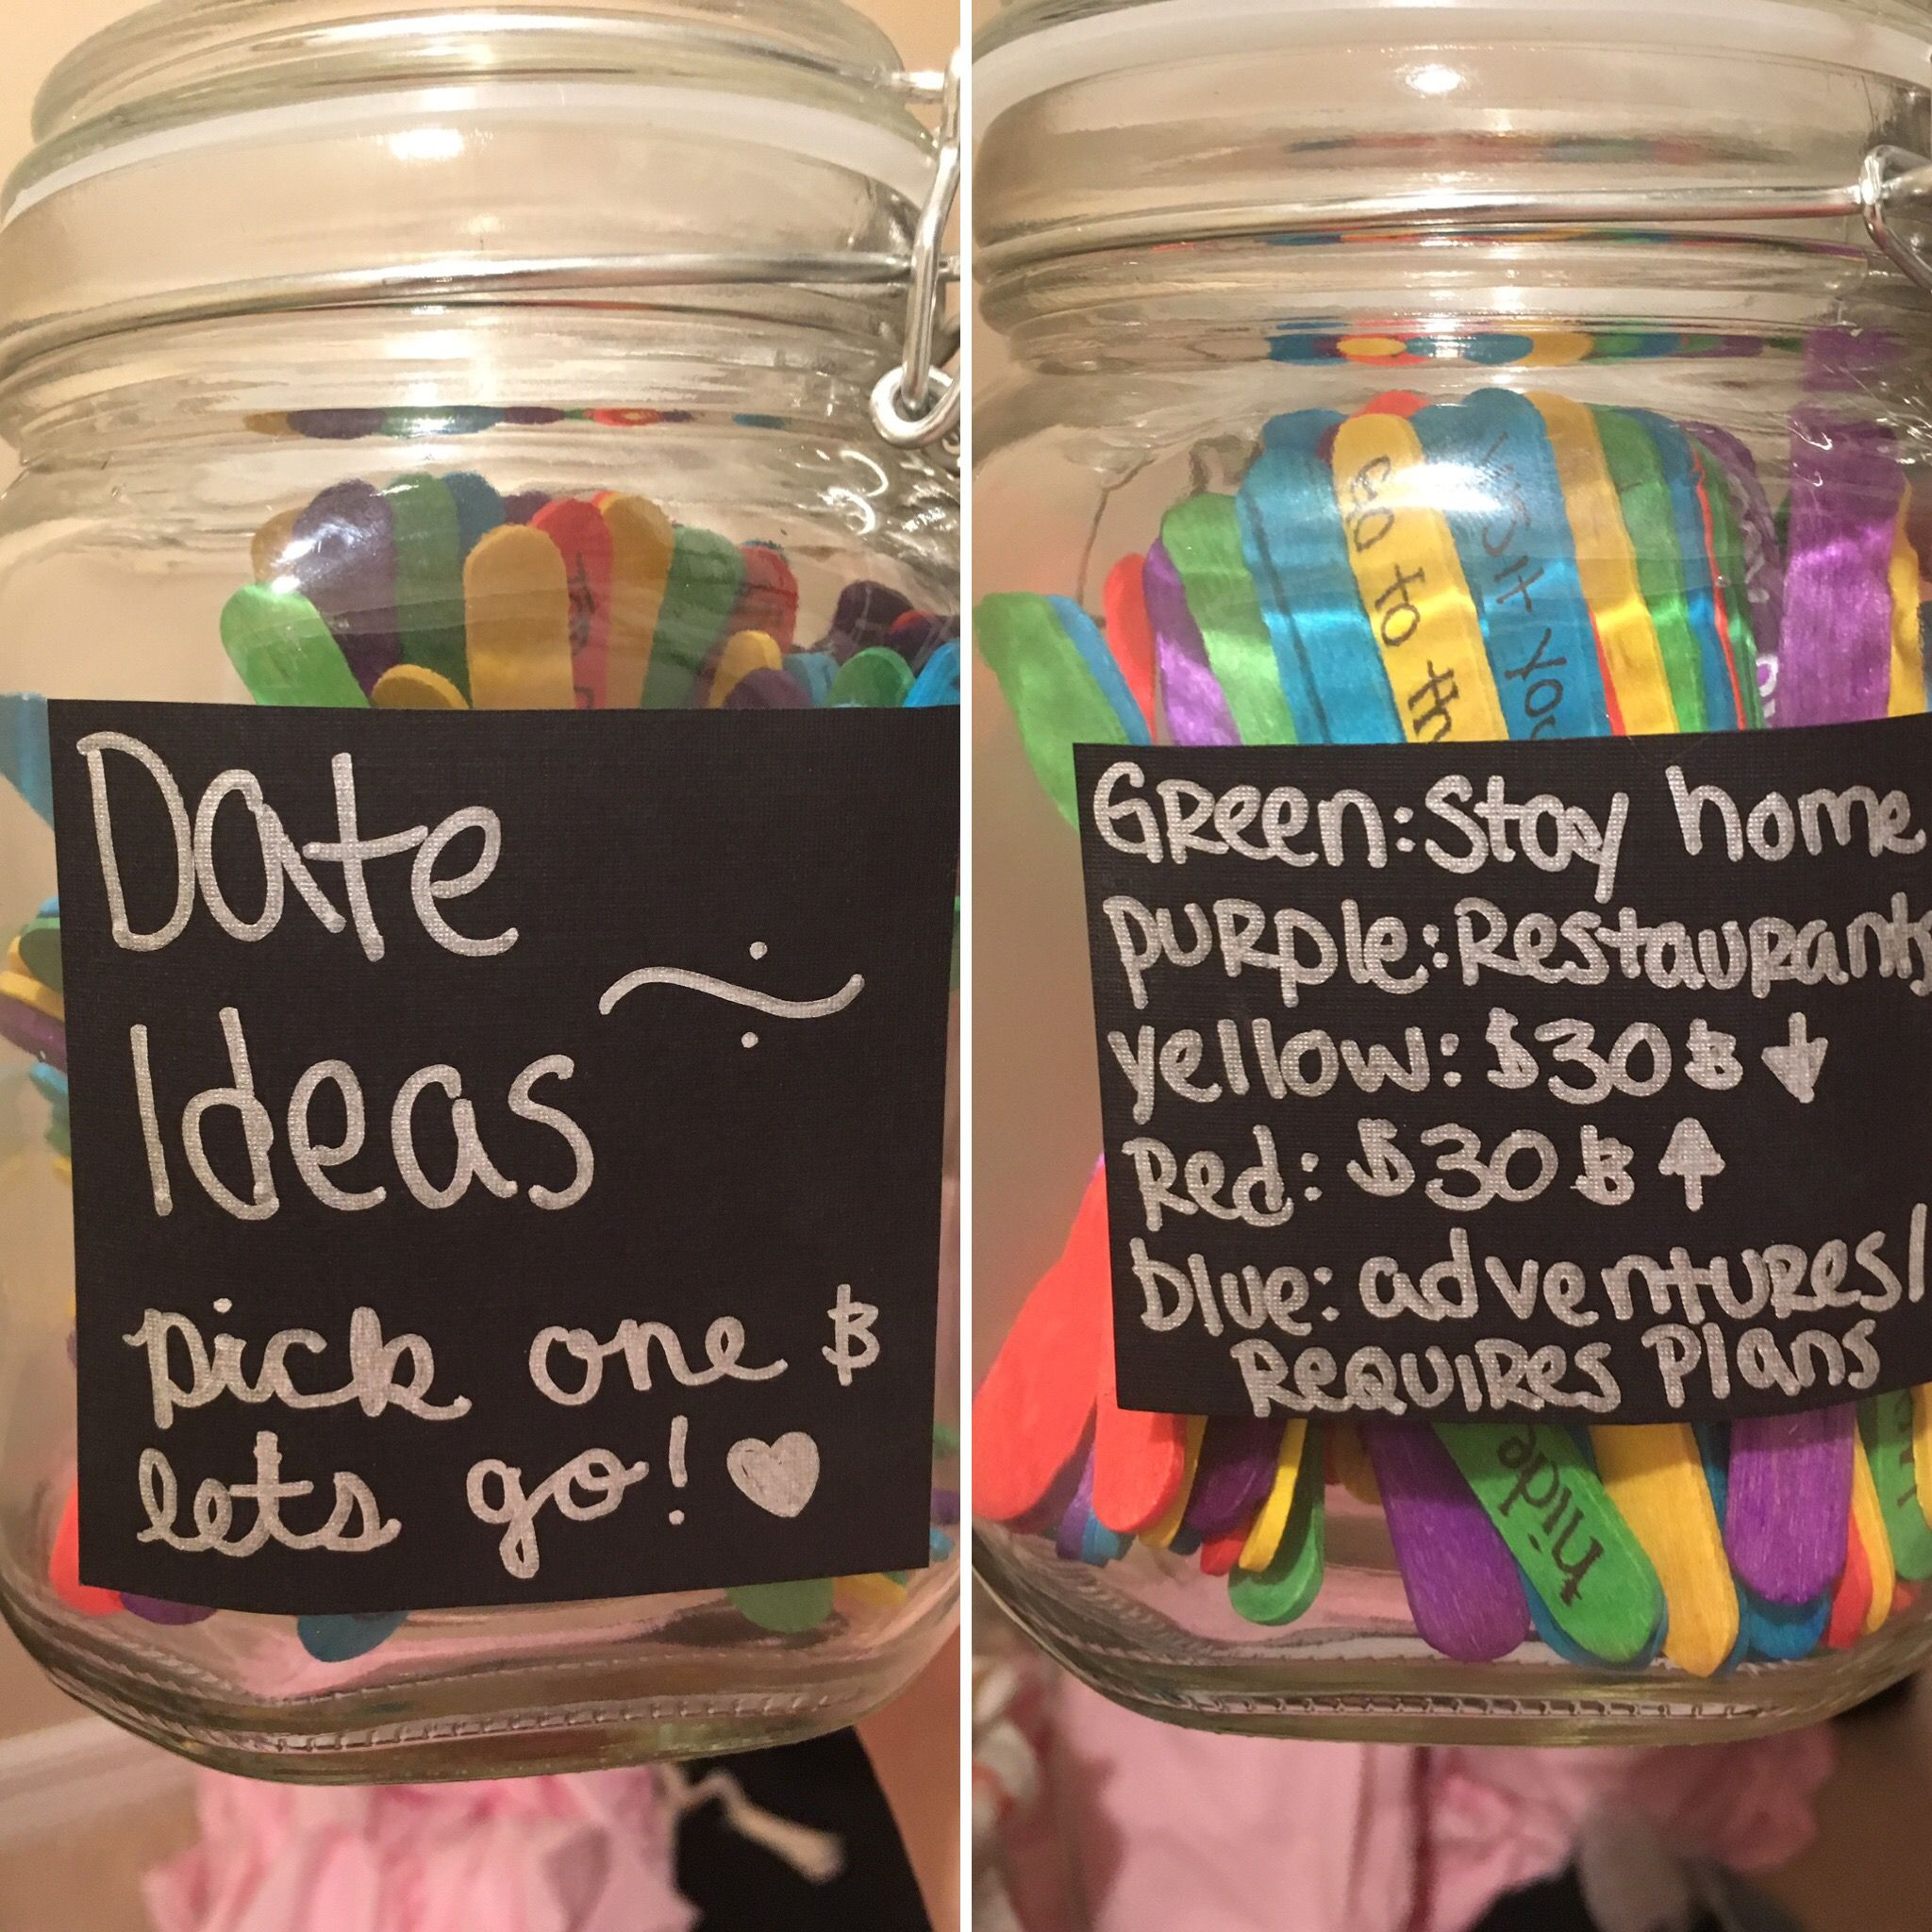 125 colored popsicle sticks5 Mason jar4 100 date ideas